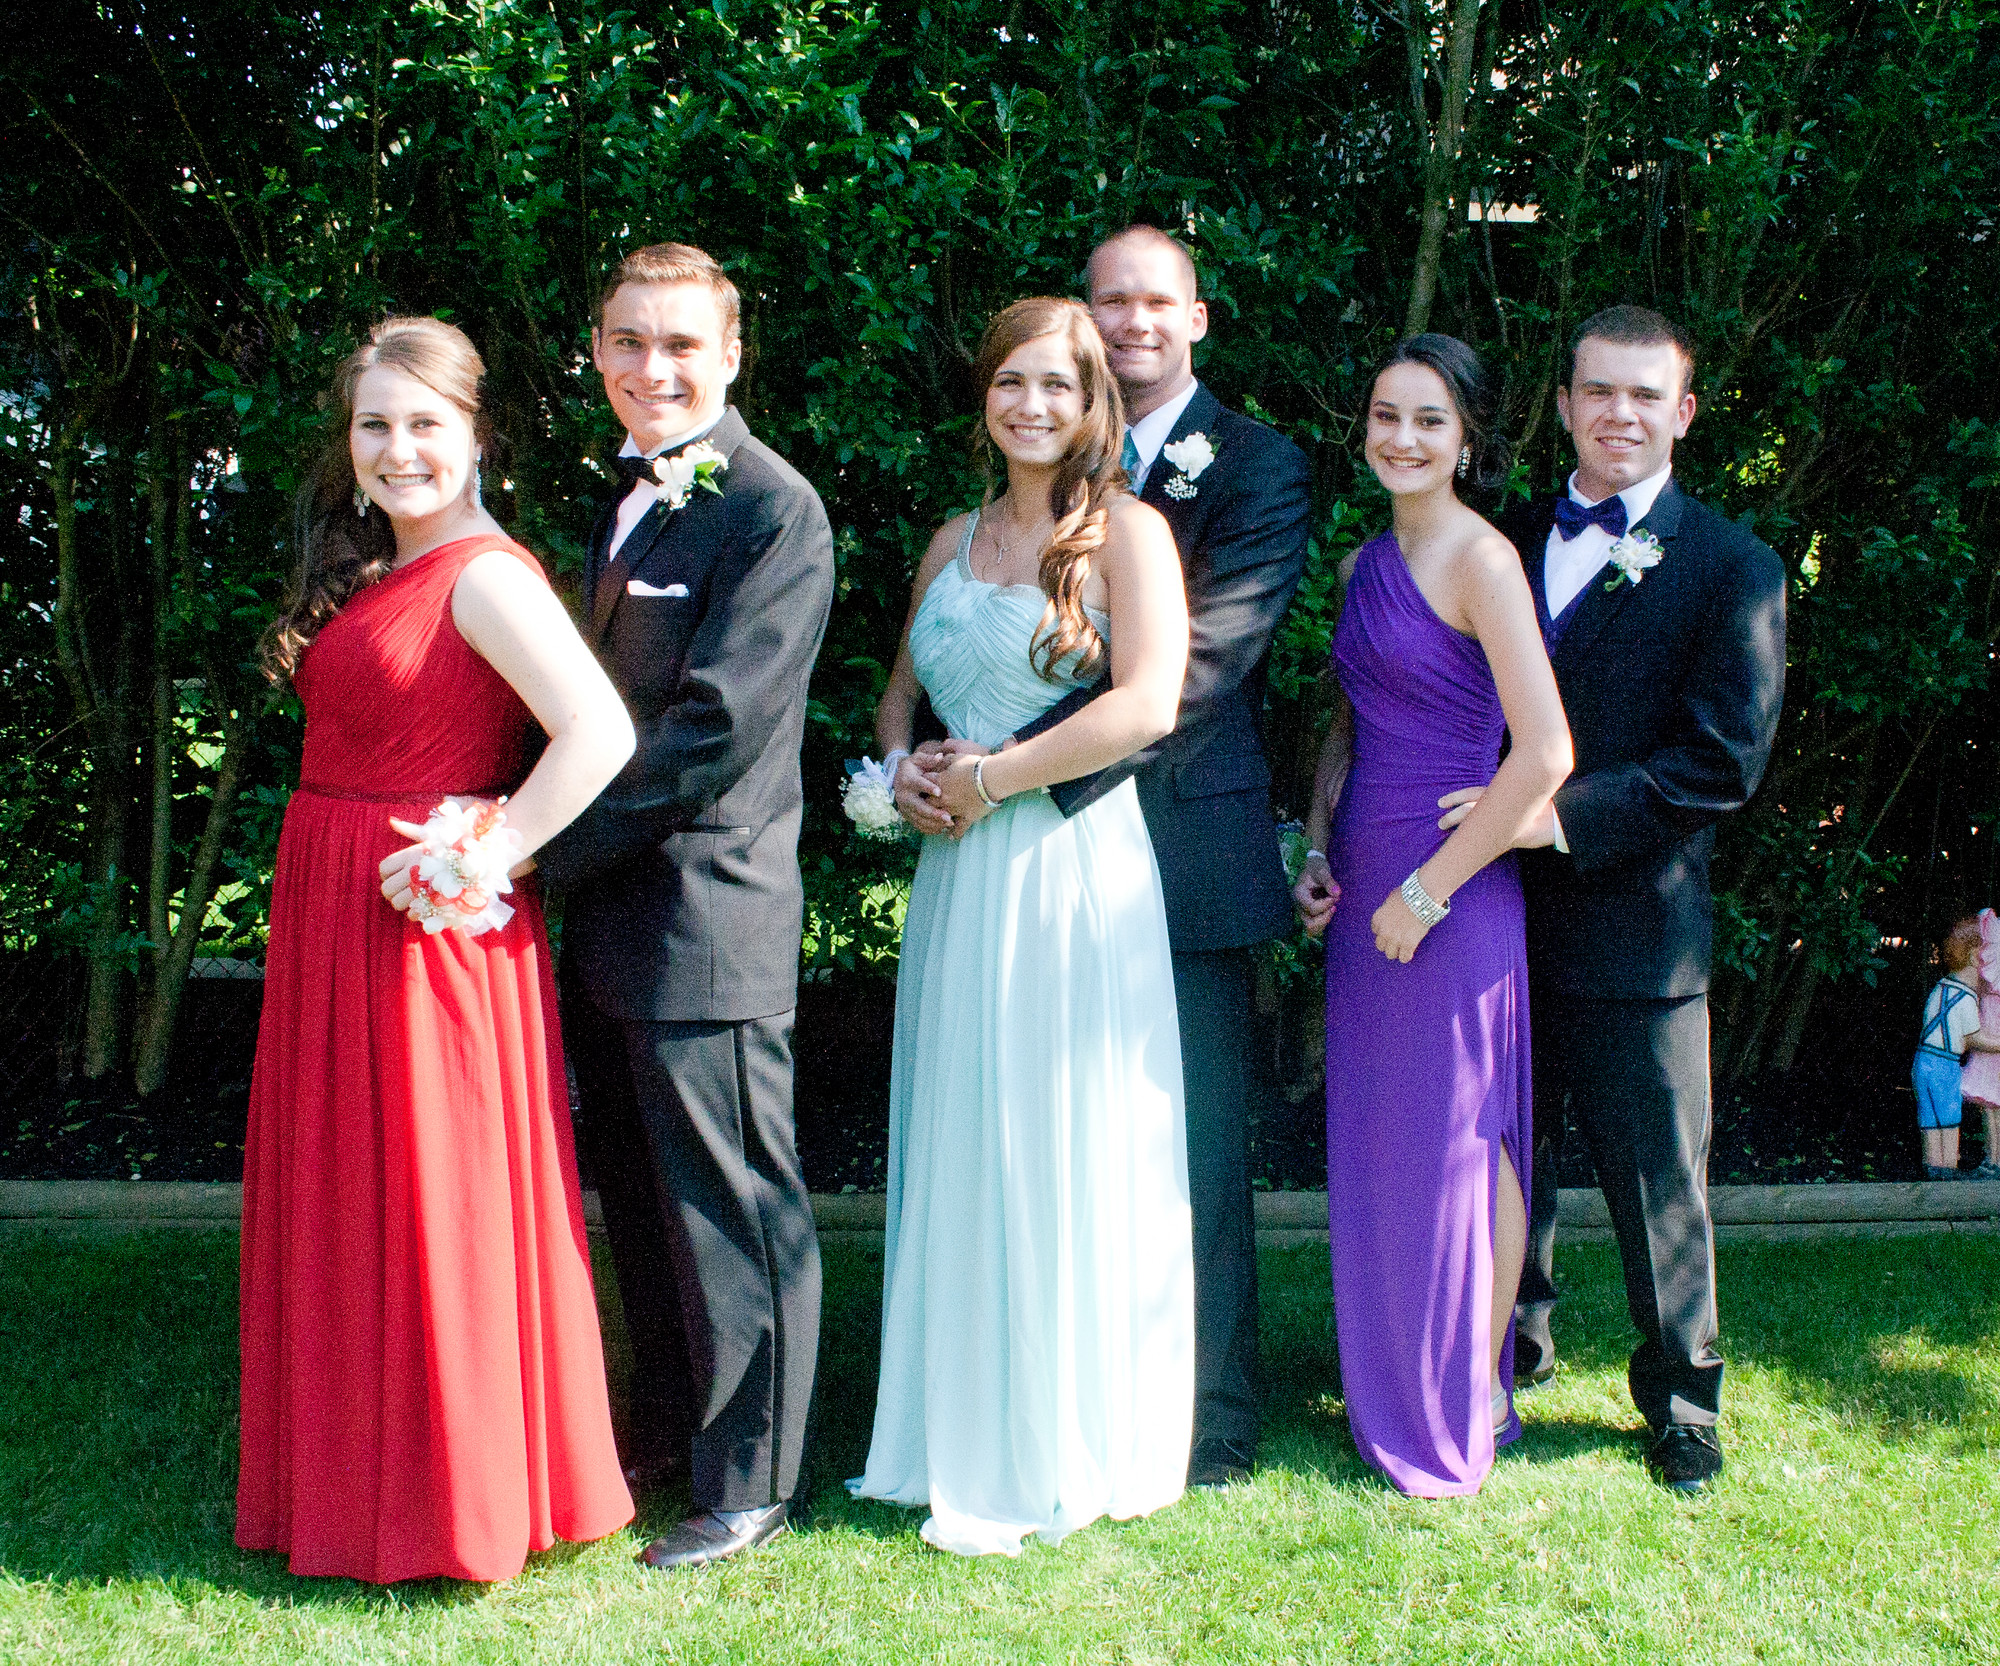 Members of the Calhoun Colts football team, Michael Kotowski, Scott Halloran and Matthew Pilotti, took pictures with their dates, Carli Messeite, Haylee Soloman and Alyssa Garbarino.